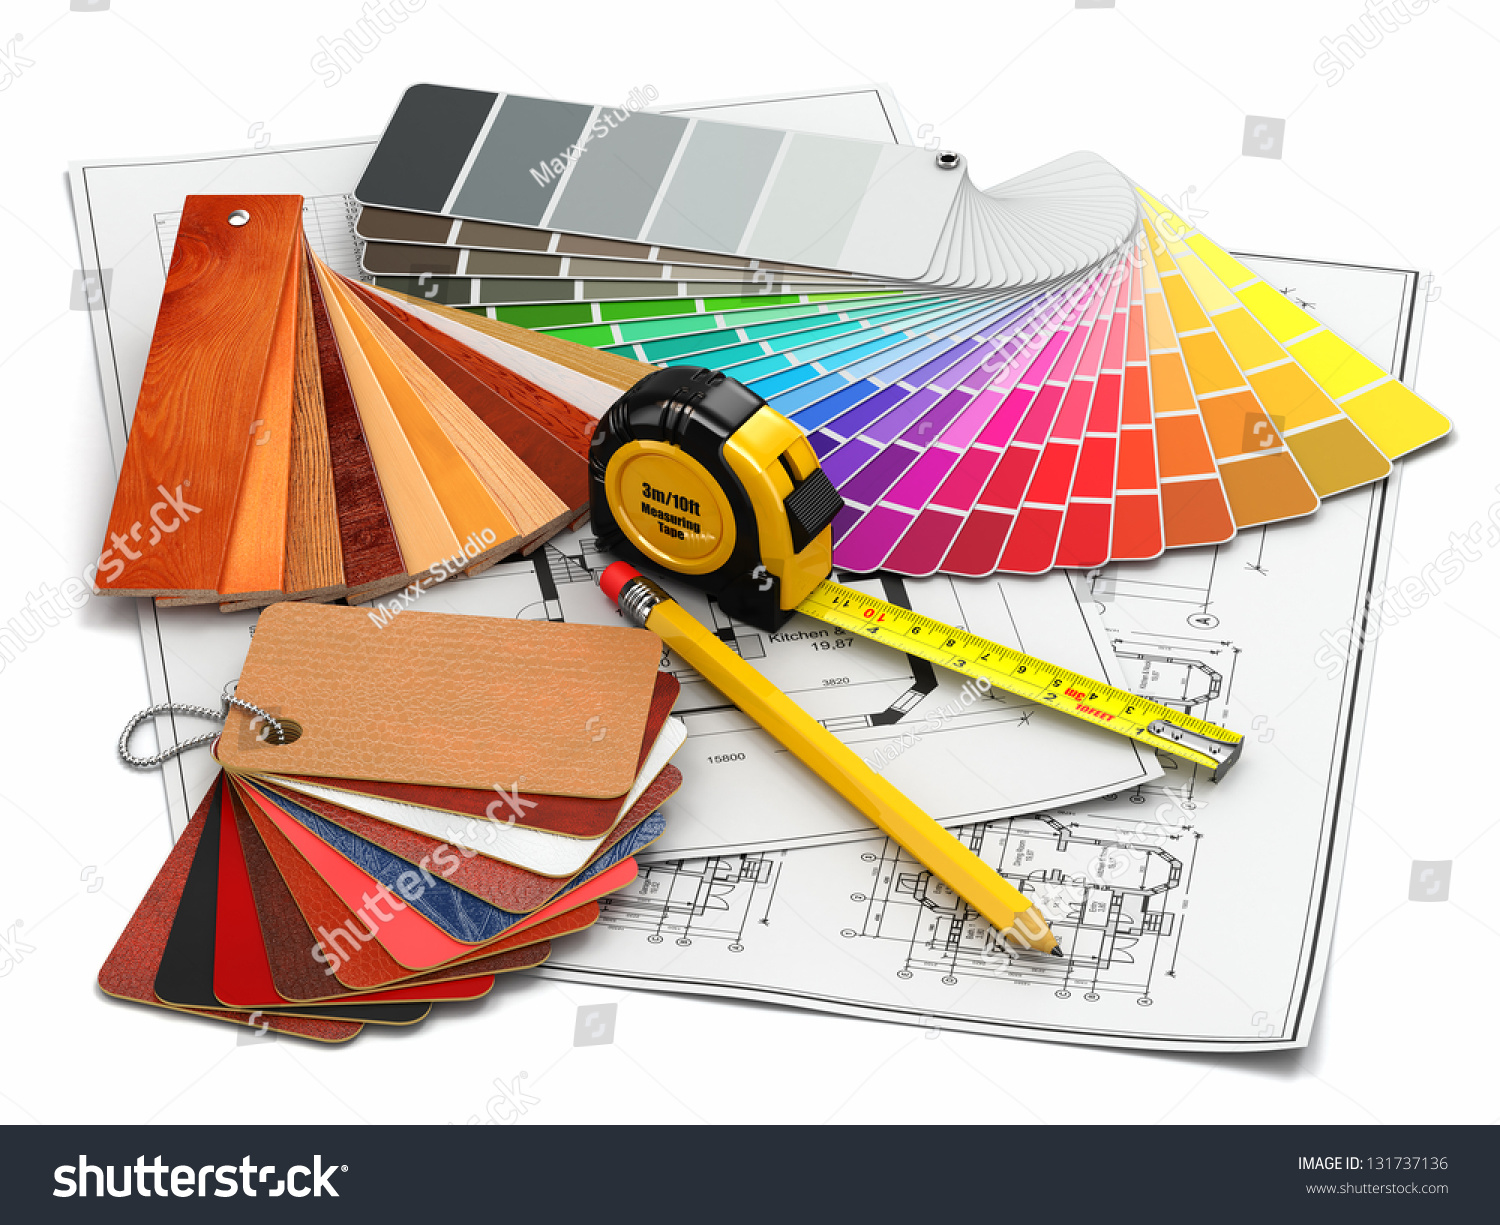 Interior design architectural materials measuring tools for Interior design tools